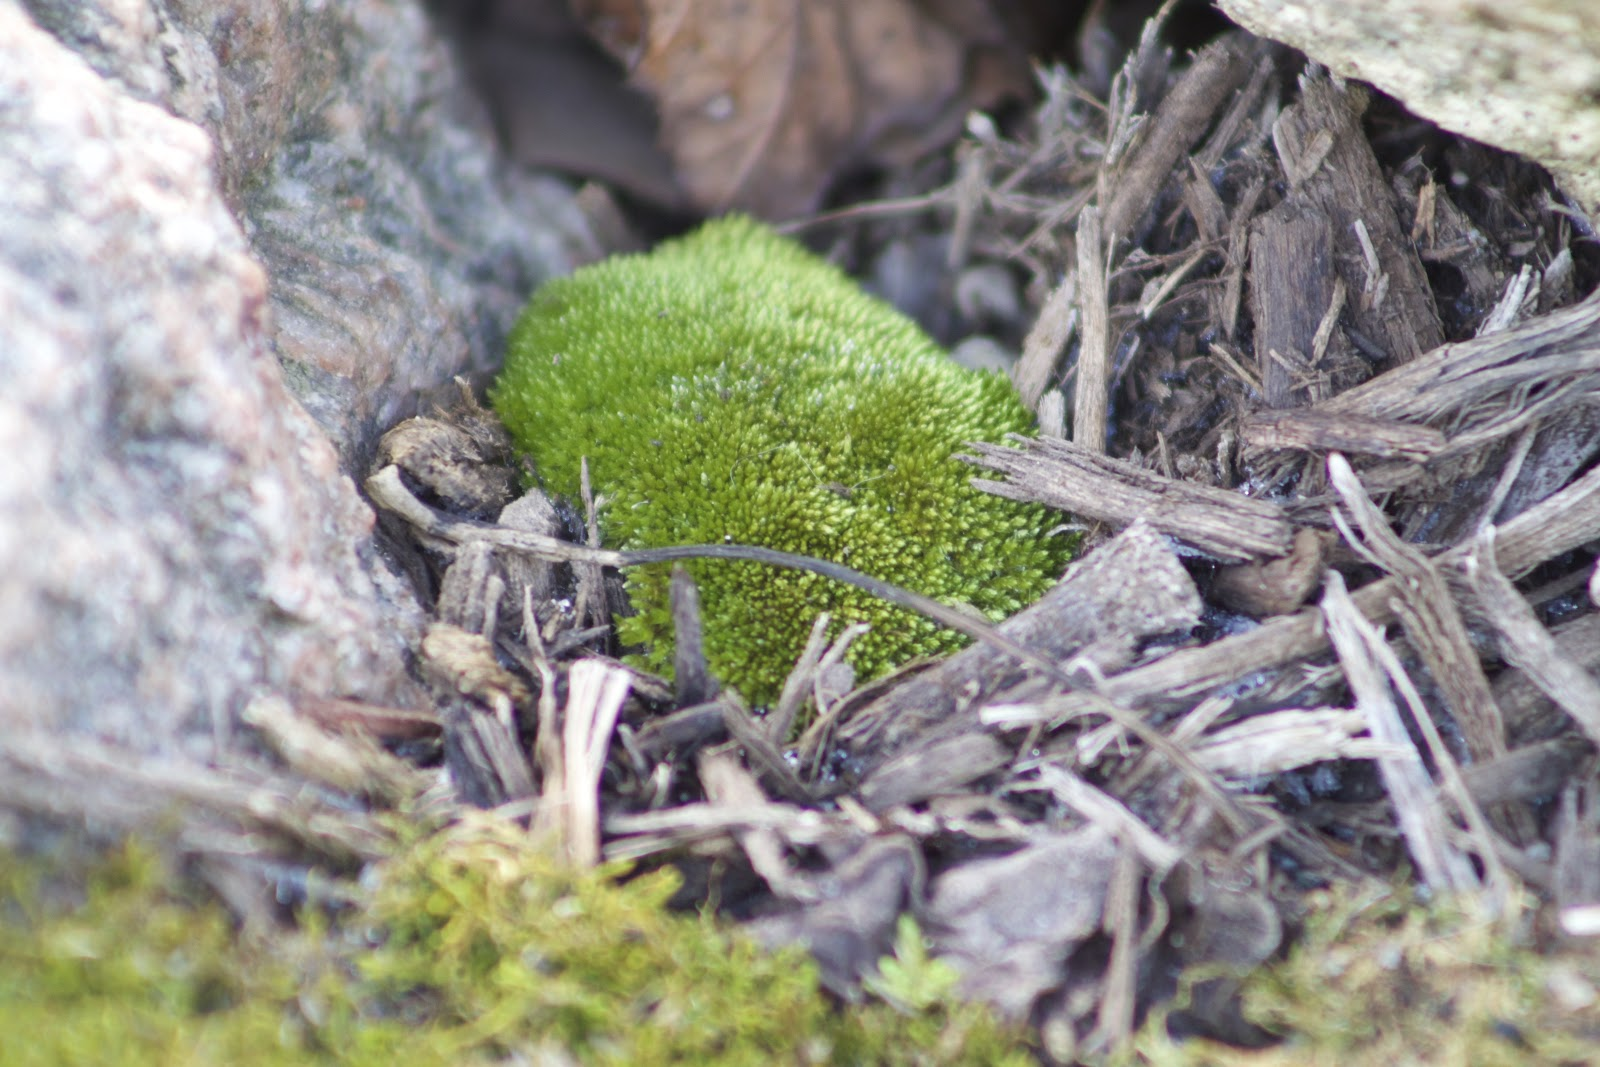 pin cushion moss clump